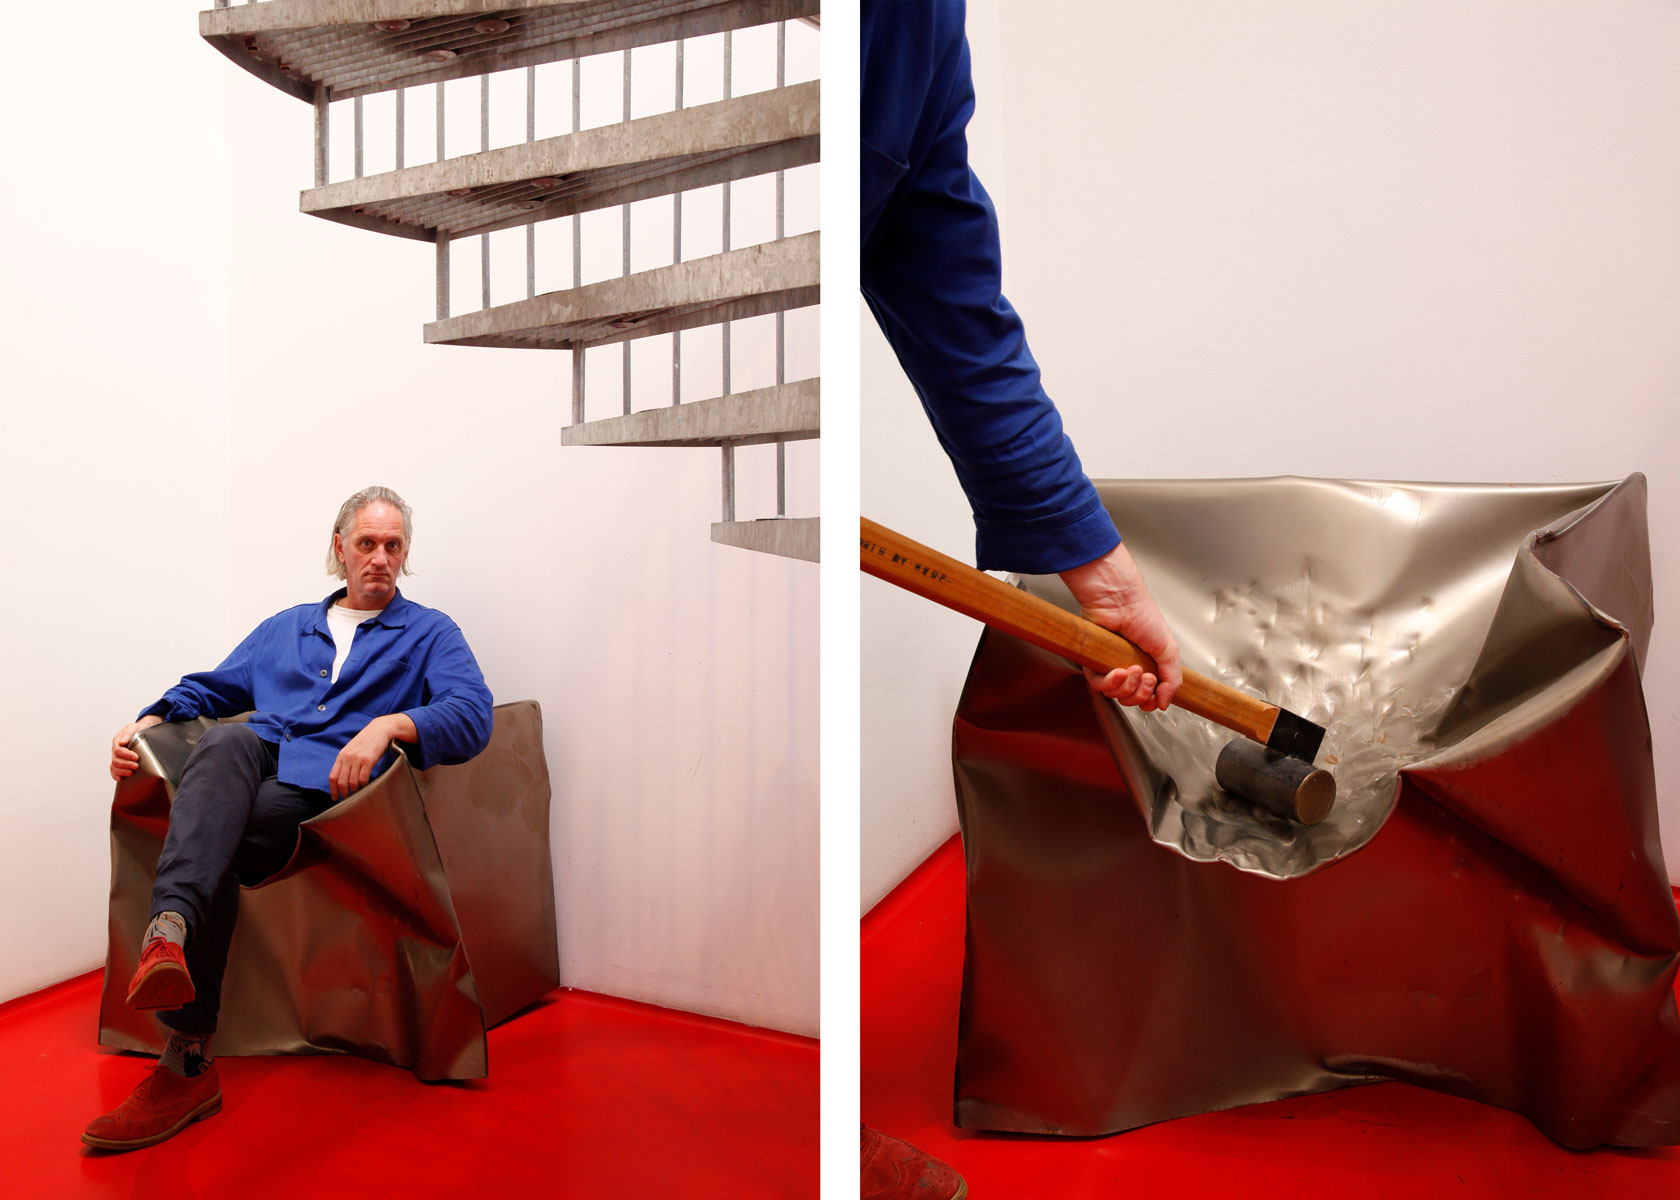 Kessels reclining in what appears to be warped metal, but is actually a functioning chair. Photographed by